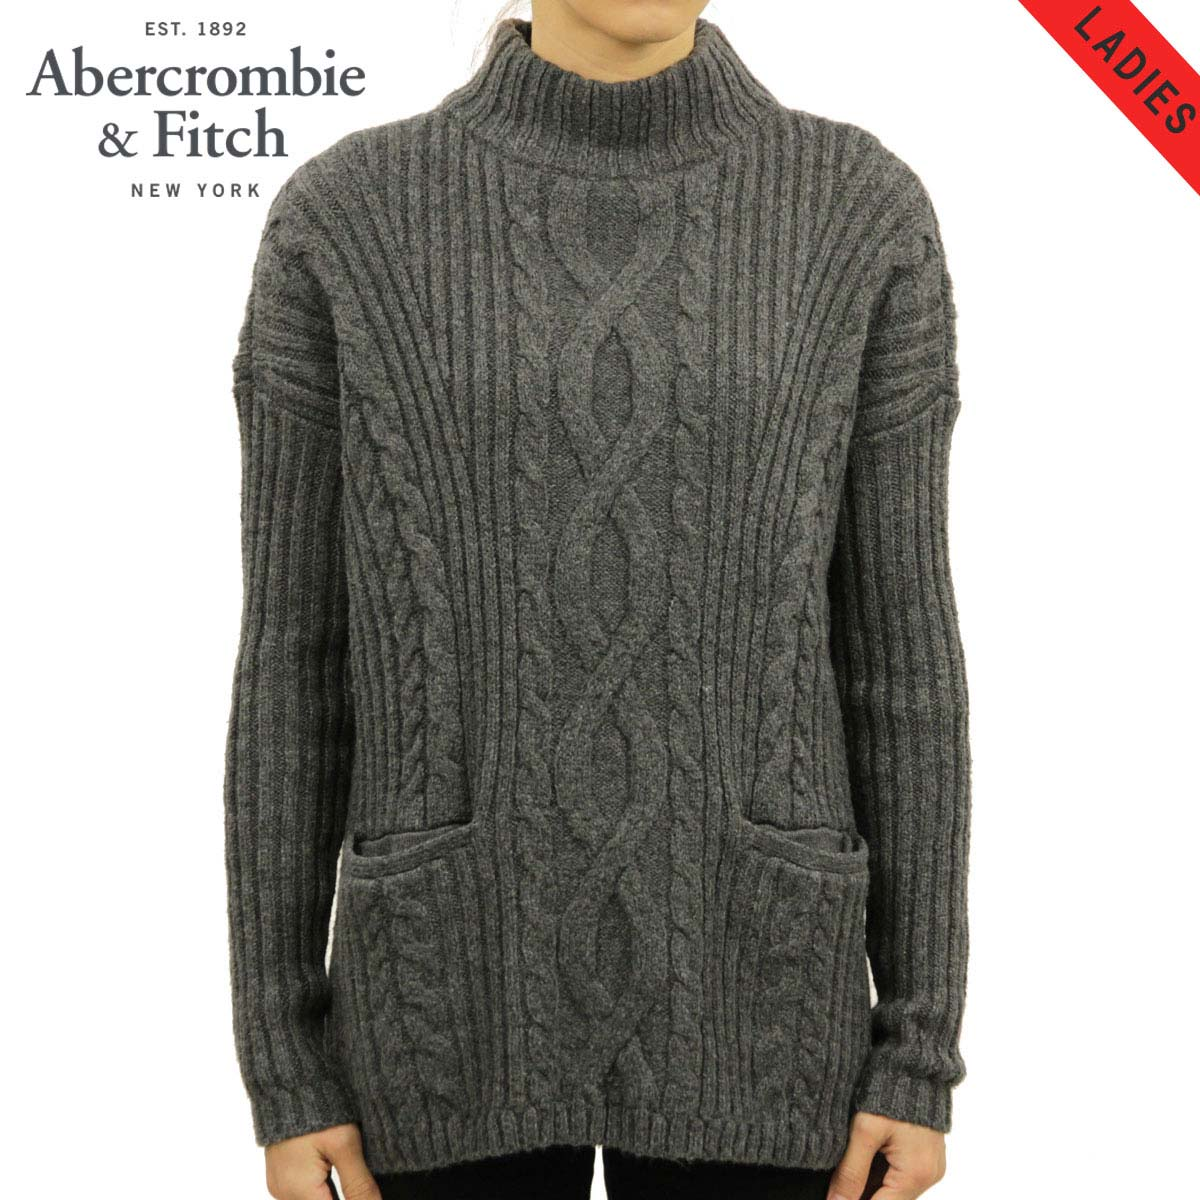 アバクロ Abercrombie&Fitch 正規品 レディース セーター BOXY CABLE TURTLENECK SWEATER 150-490-0797-122 D00S20